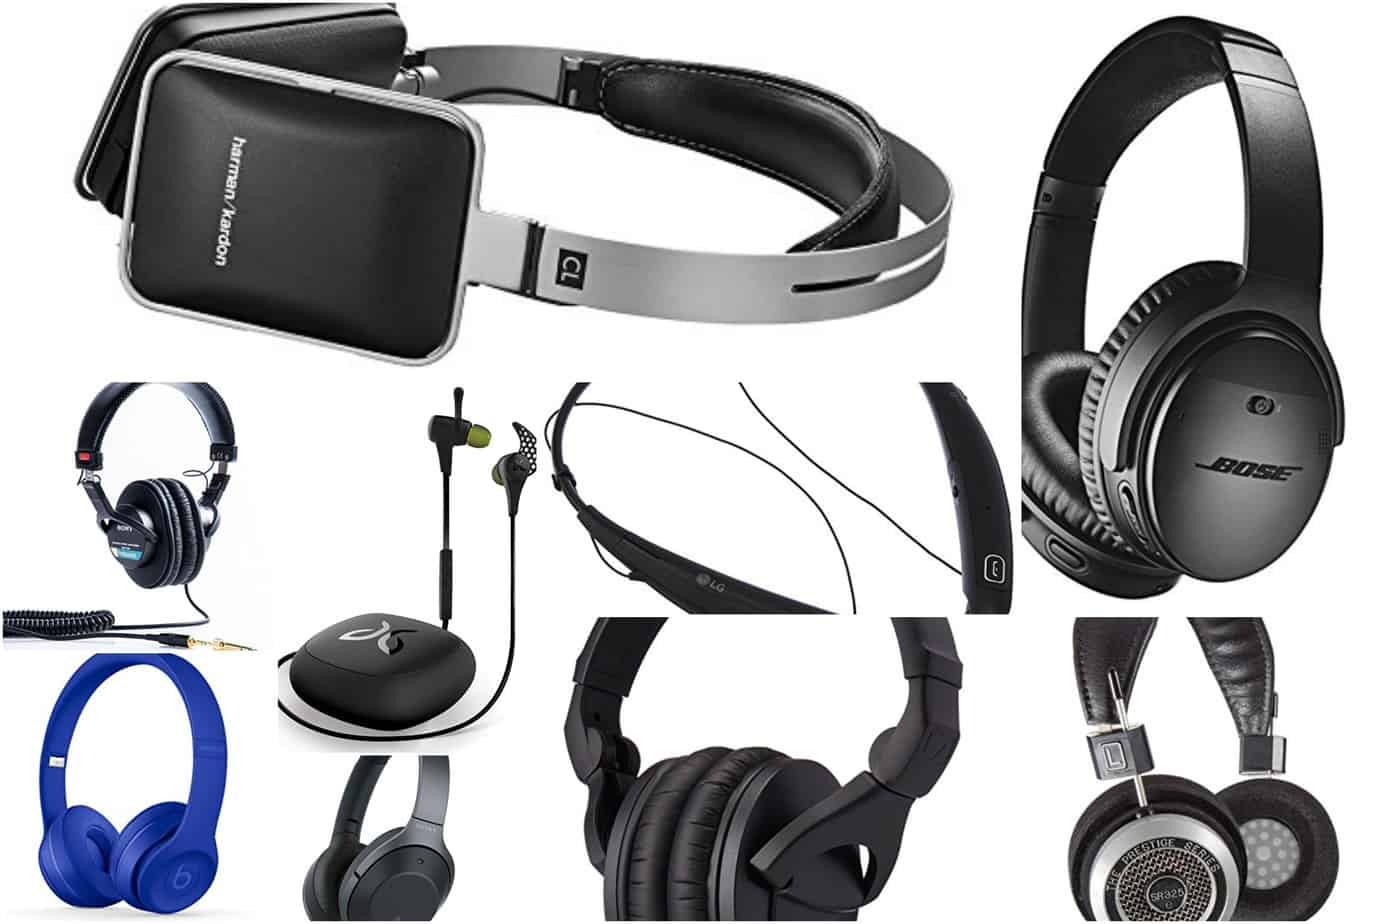 25 Of The Best Podcast Headphones Discover Podcasts Jabra Sport Bluetooth Stereo Headset On Lg Wireless Speaker Pods